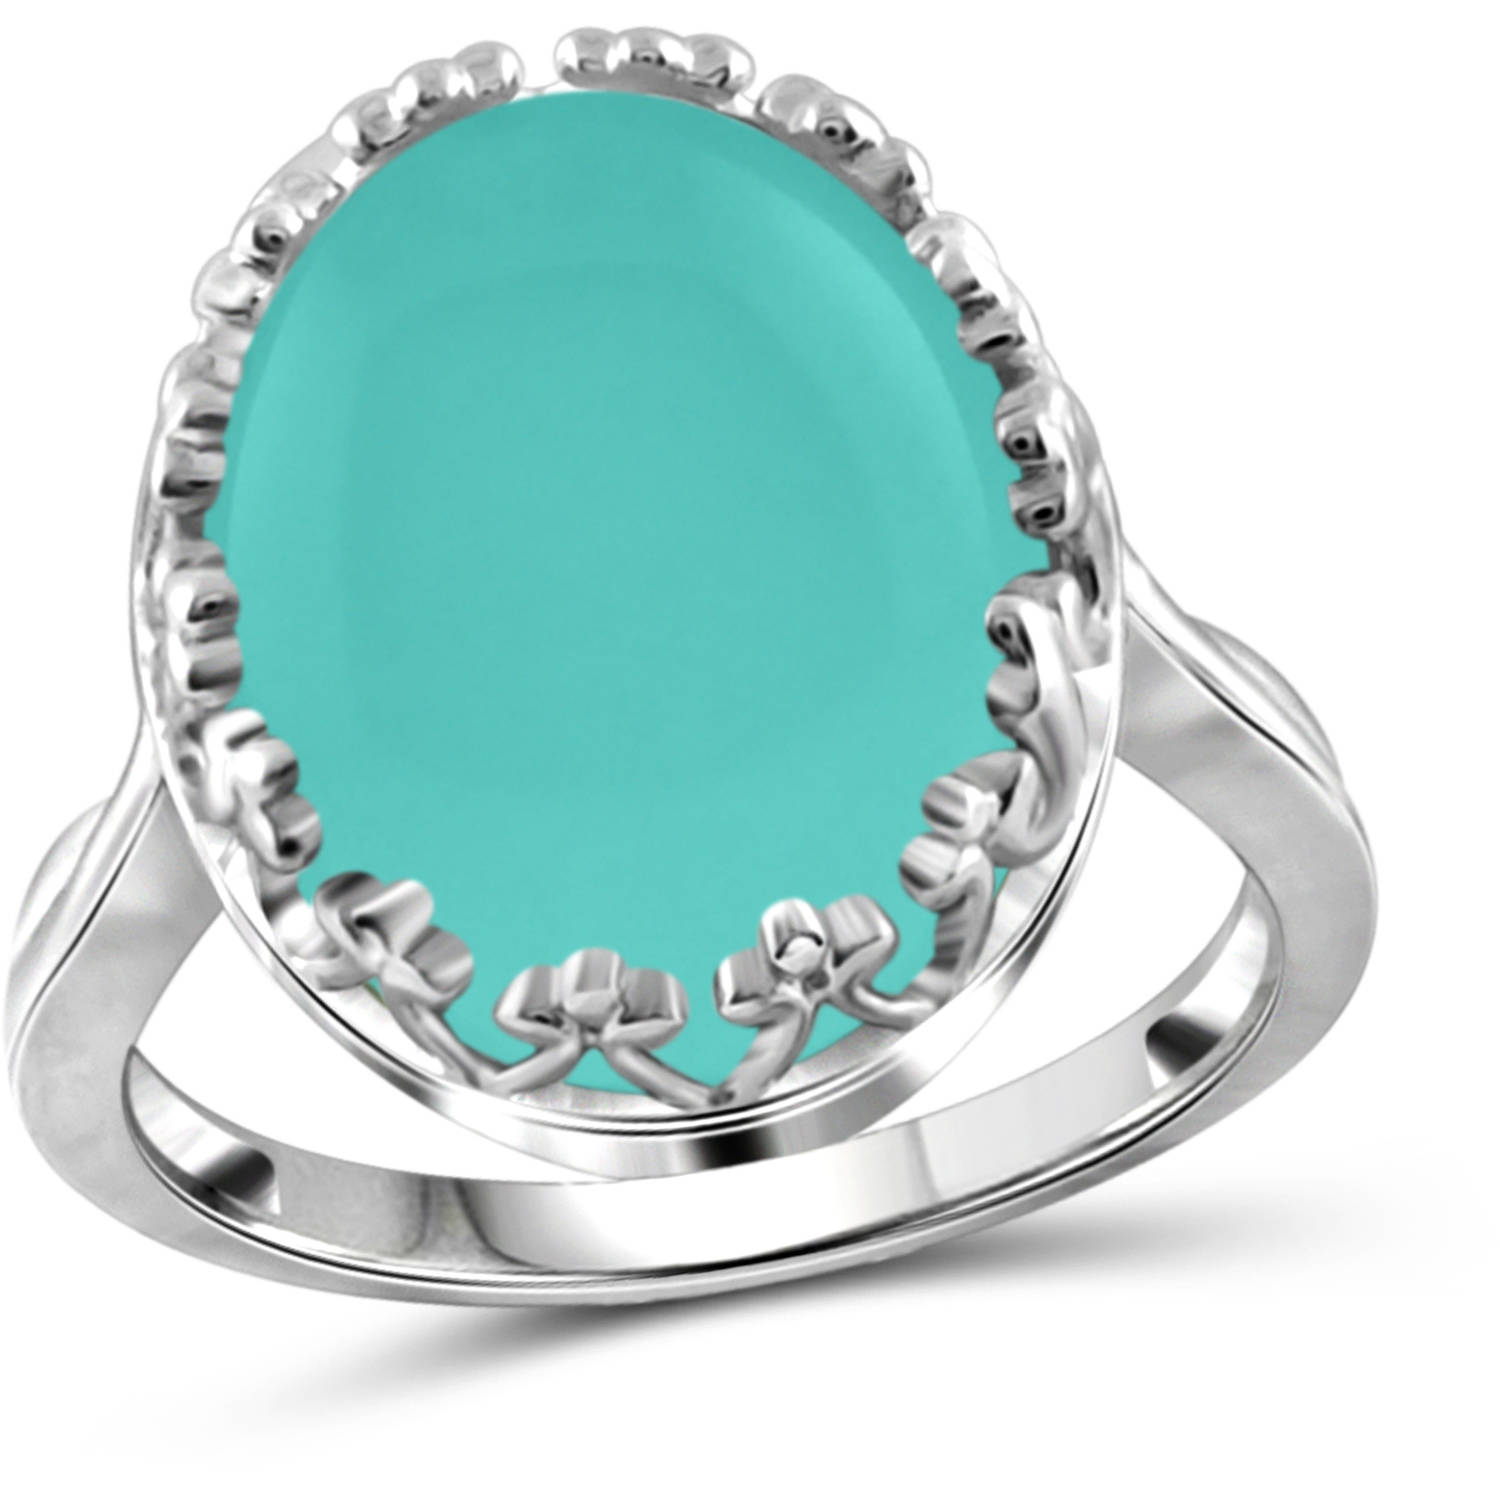 JewelersClub 9-3 4 Carat T.G.W. Chalcedony Sterling Silver Fashion Ring by JewelersClub